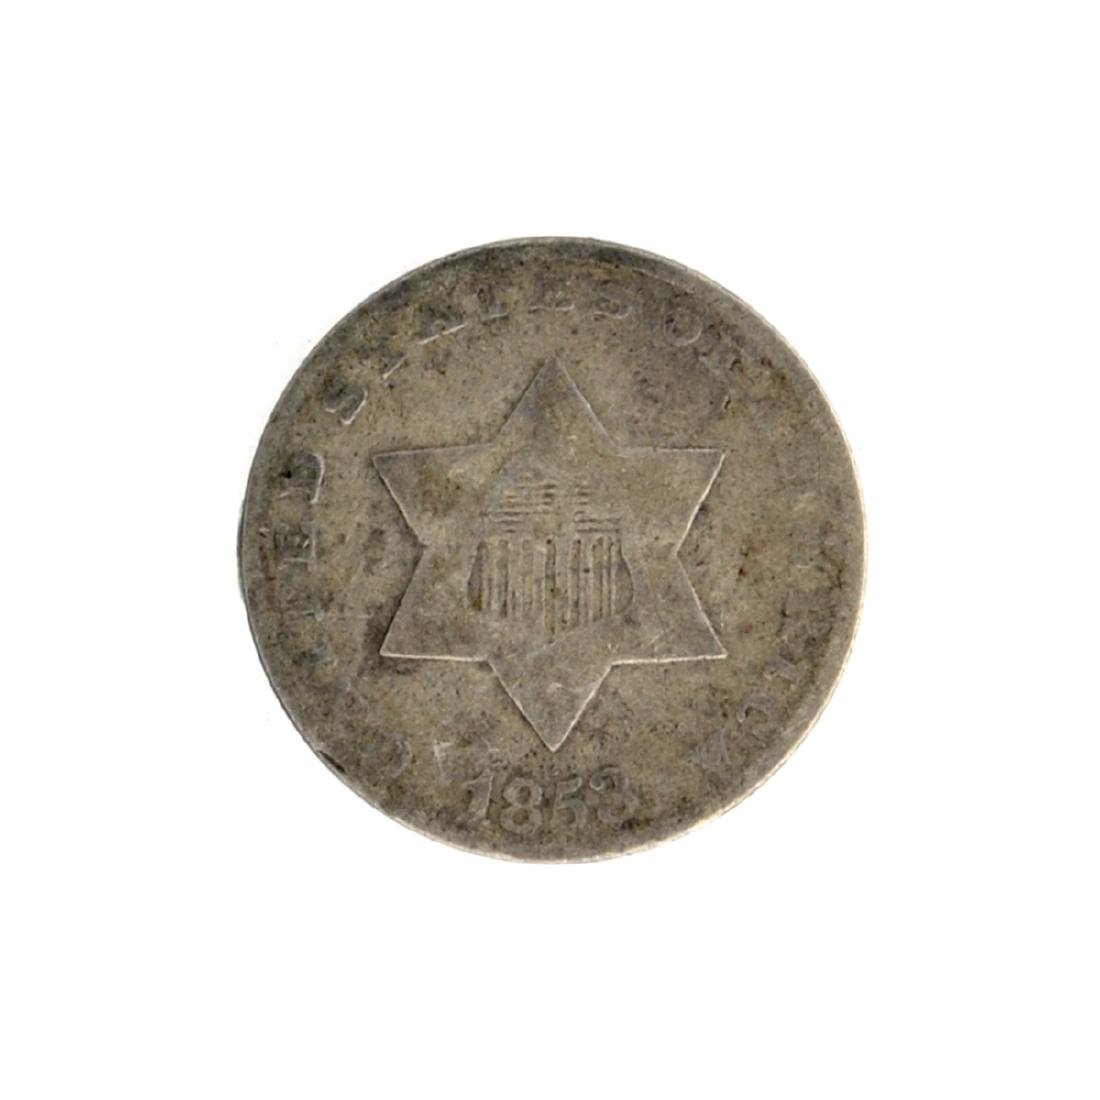 1853 Silver Three-Cent Coin